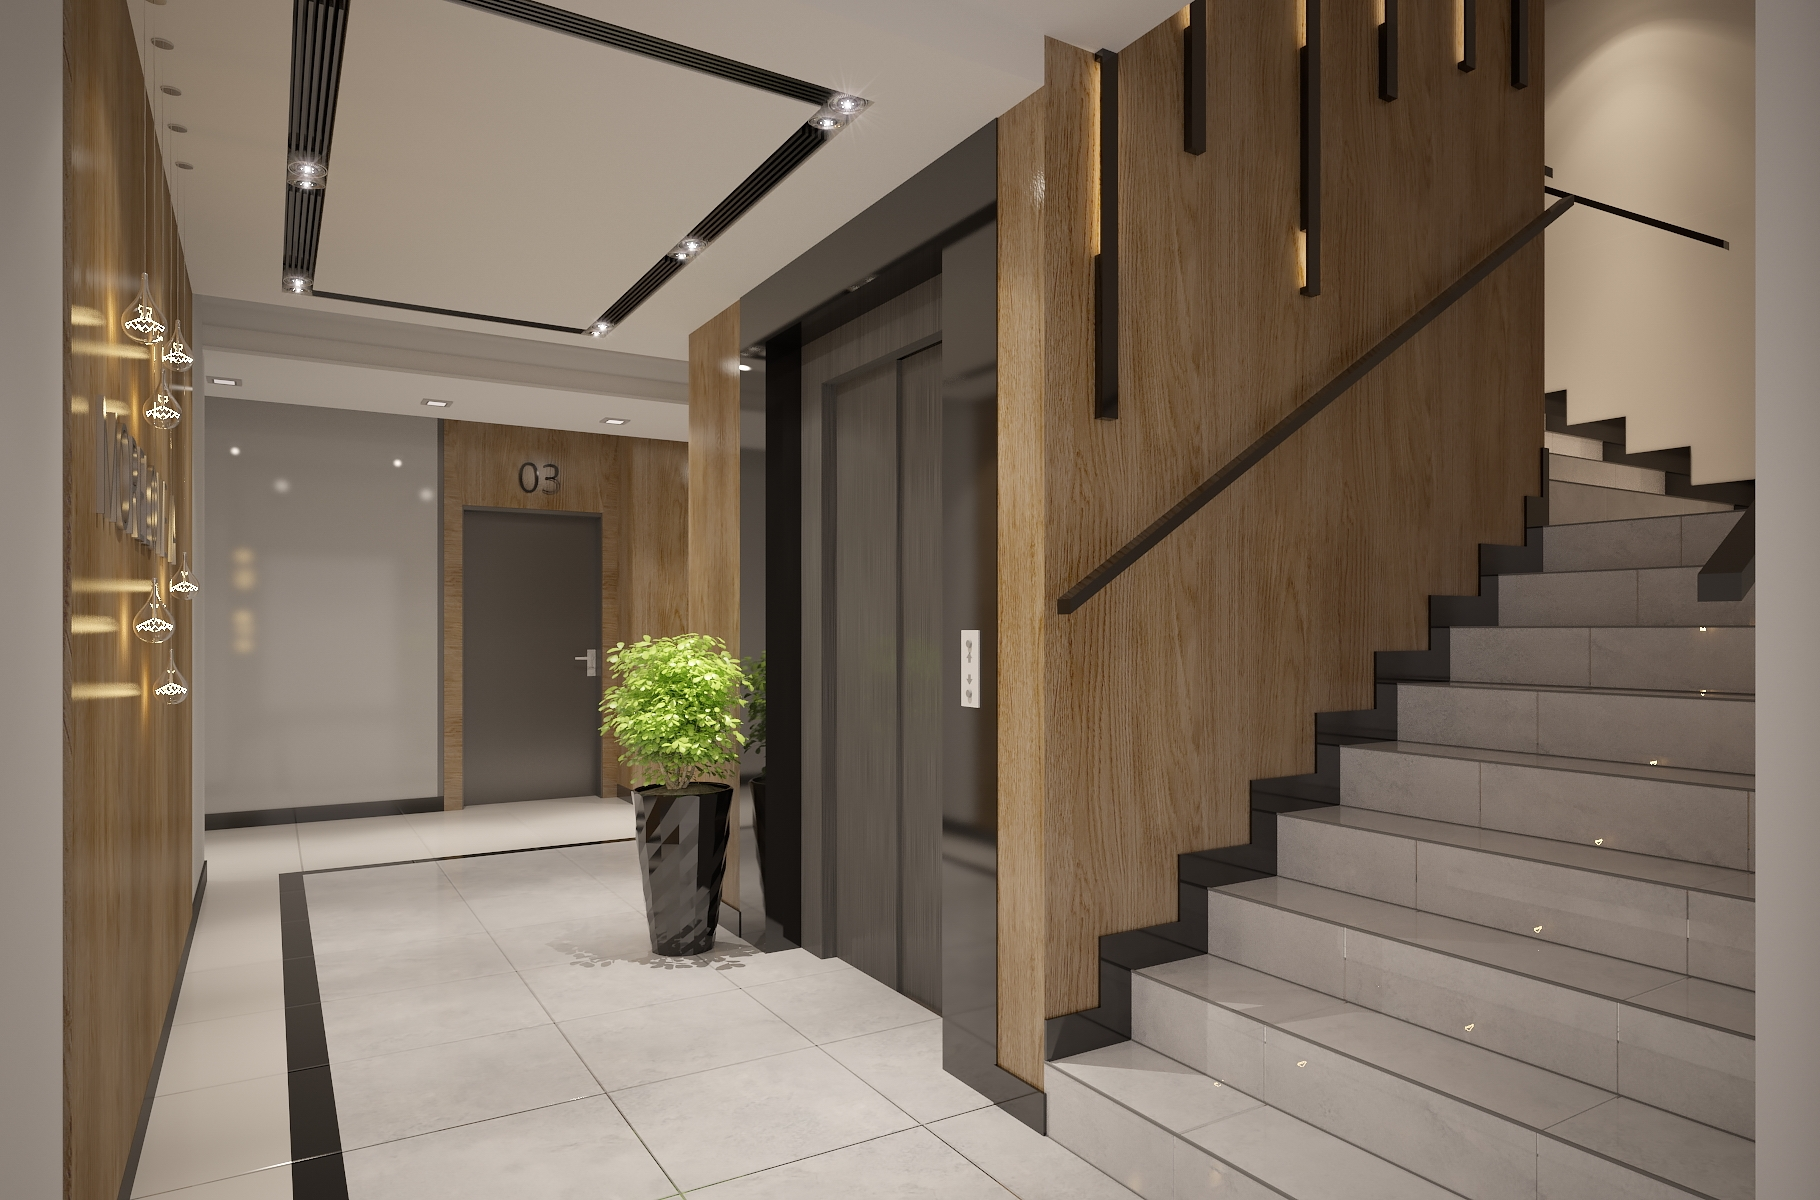 Apartments Building Entrance Hall Area Foyer Lobby With Elevator   Stairs Design In Lobby   Entrance Lobby   Foyer   Architectural   Circle Elevator Design Home   White